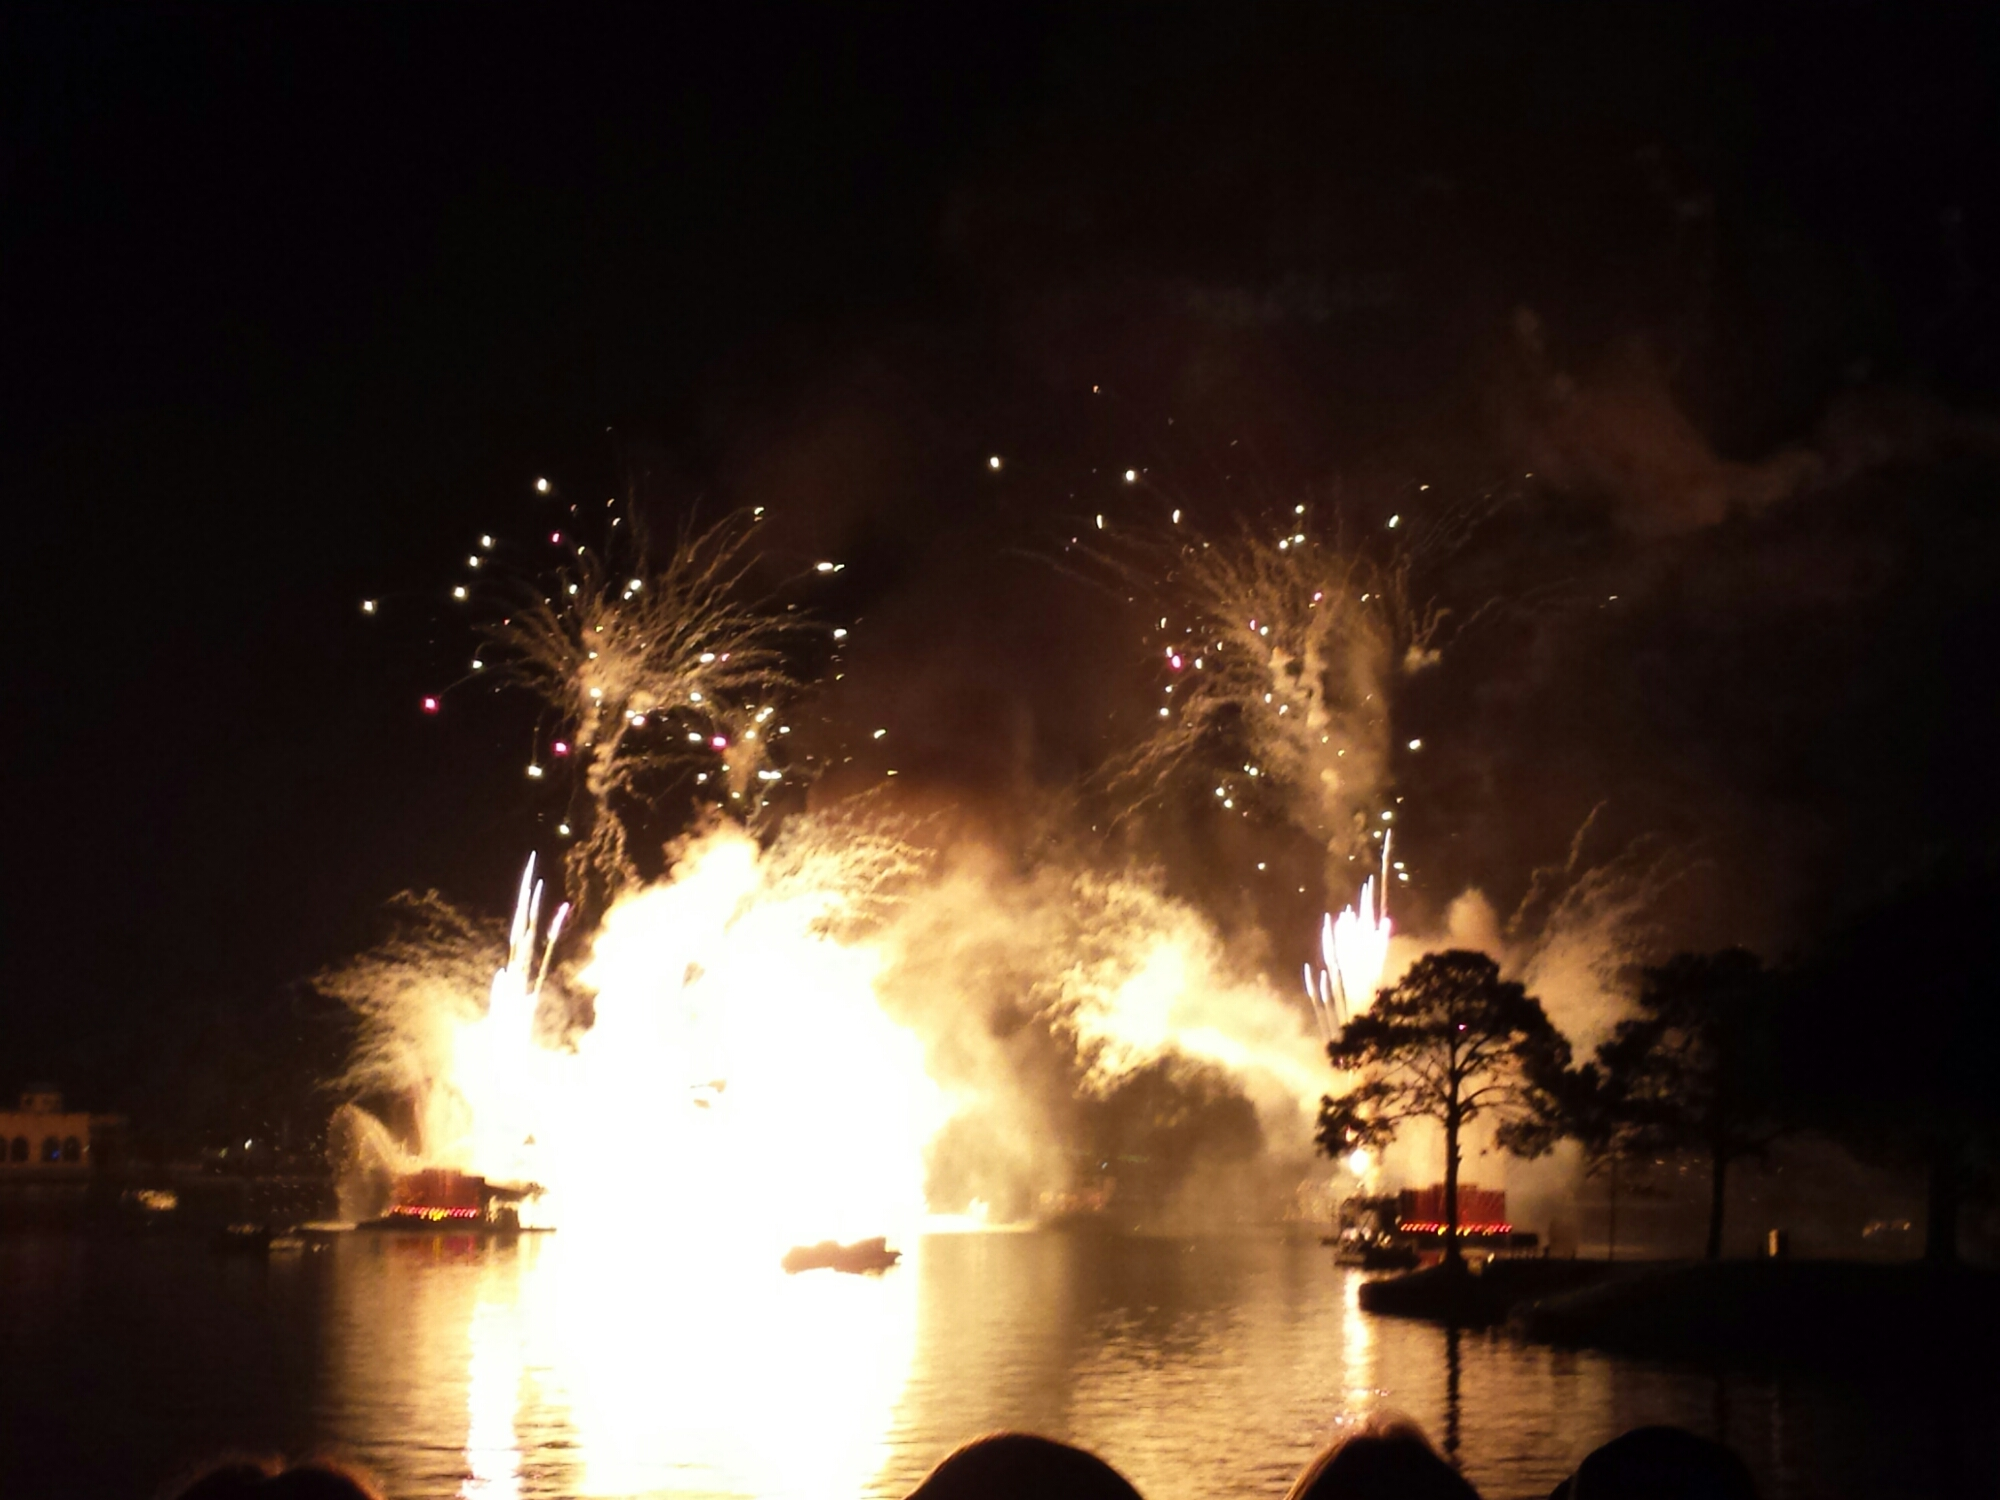 Closing out the evening with Illuminations Reflections of Earth at #Epcot